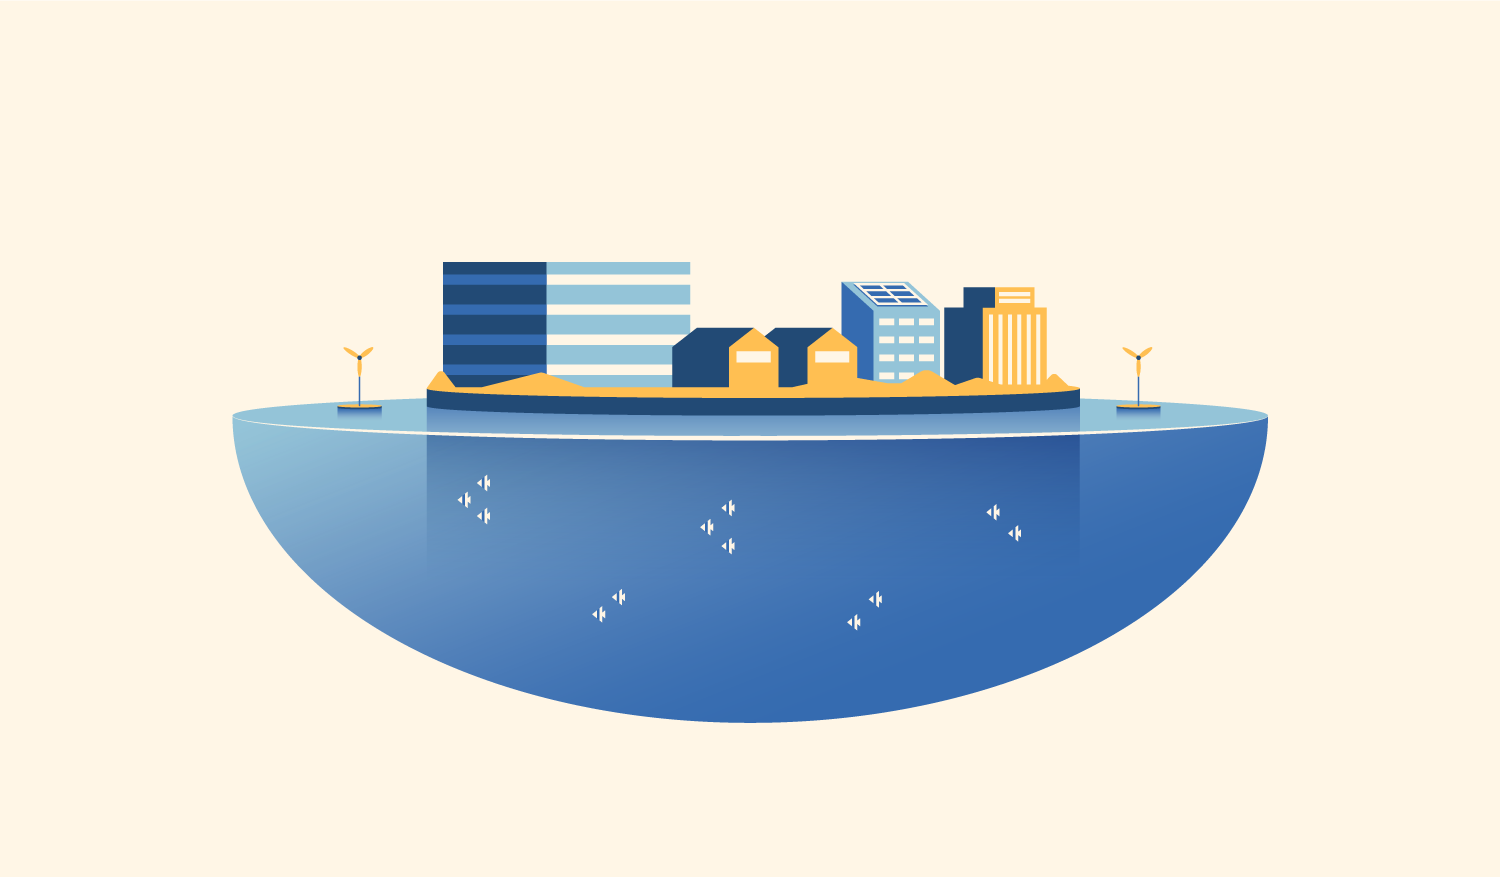 Illustration of a floating city, which would provide climate-resilient housing for communities threatened by rising sea levels.